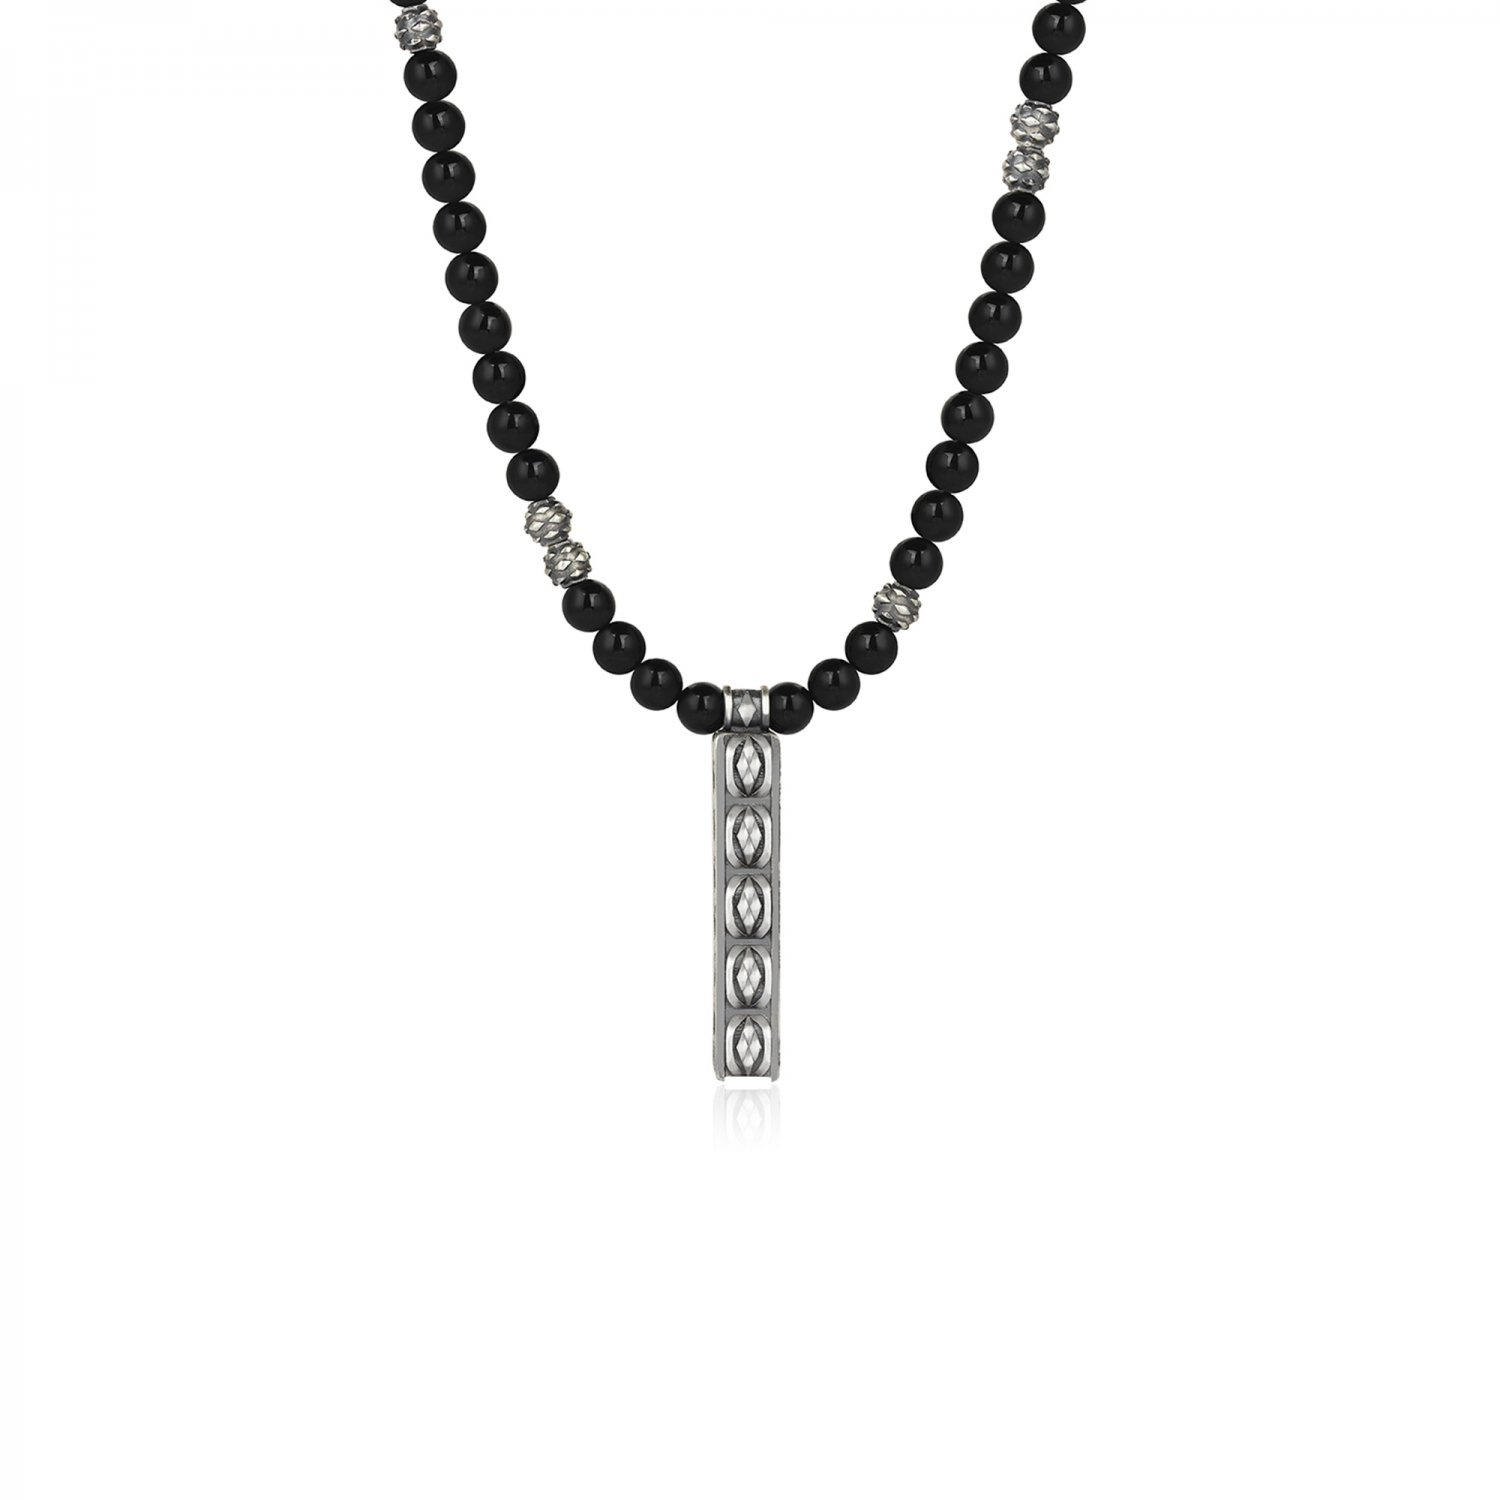 Cubic Style Beads Necklace with Black Onyx